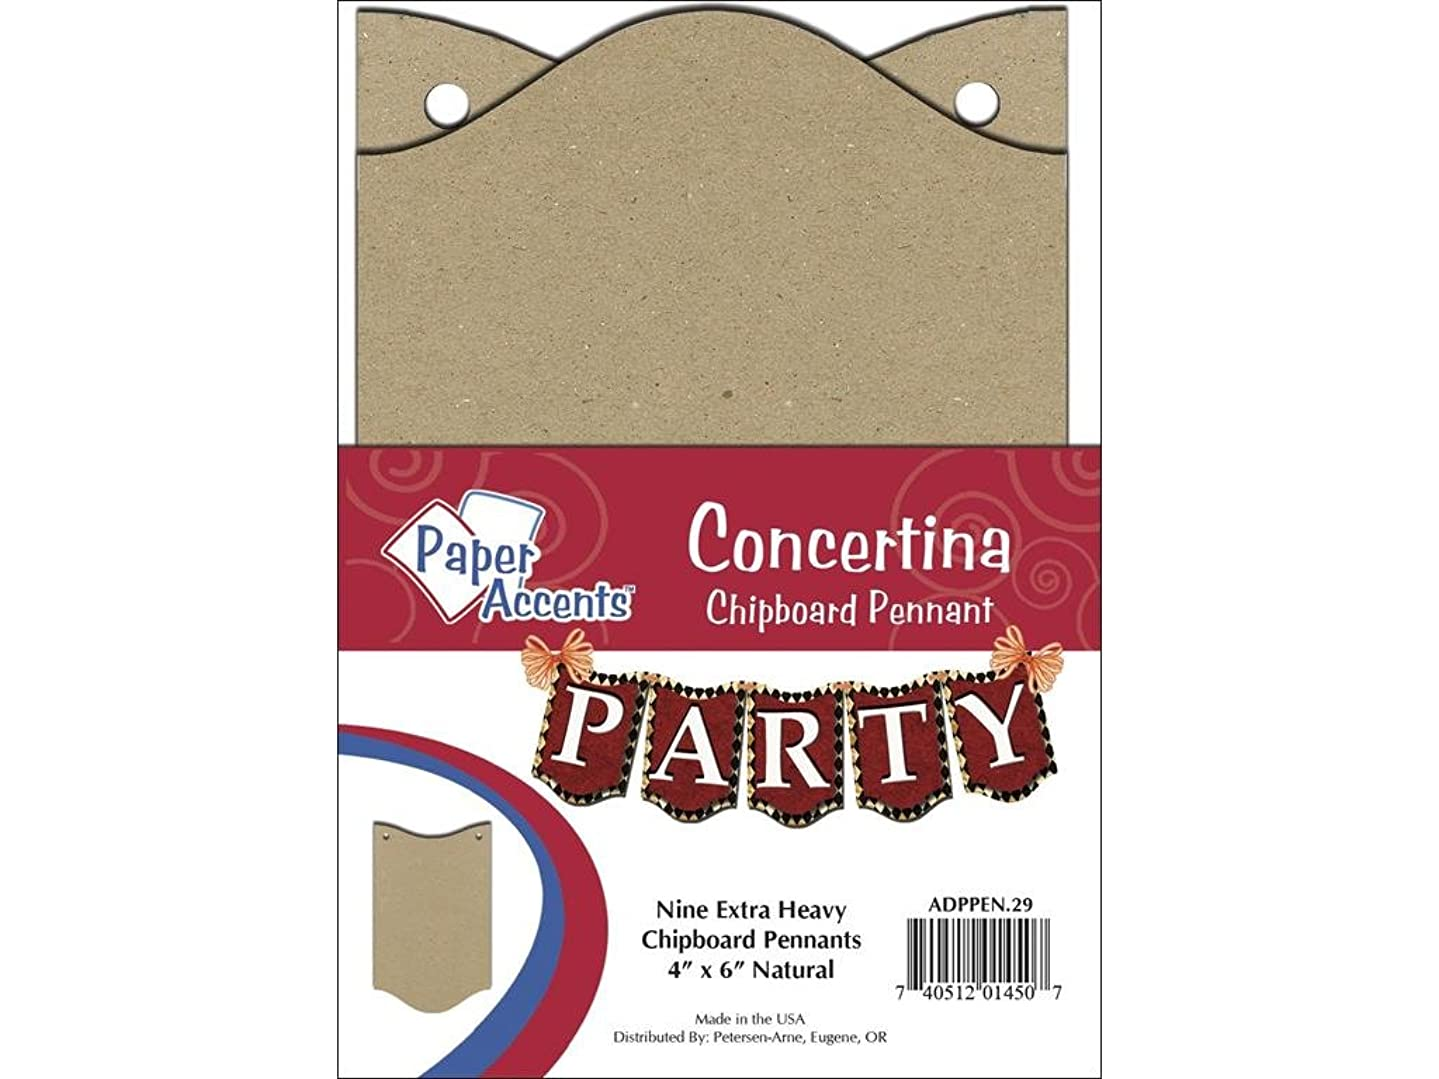 Accent Design Paper Accents ChipPennant 4x6 NAT Pennant Concertina